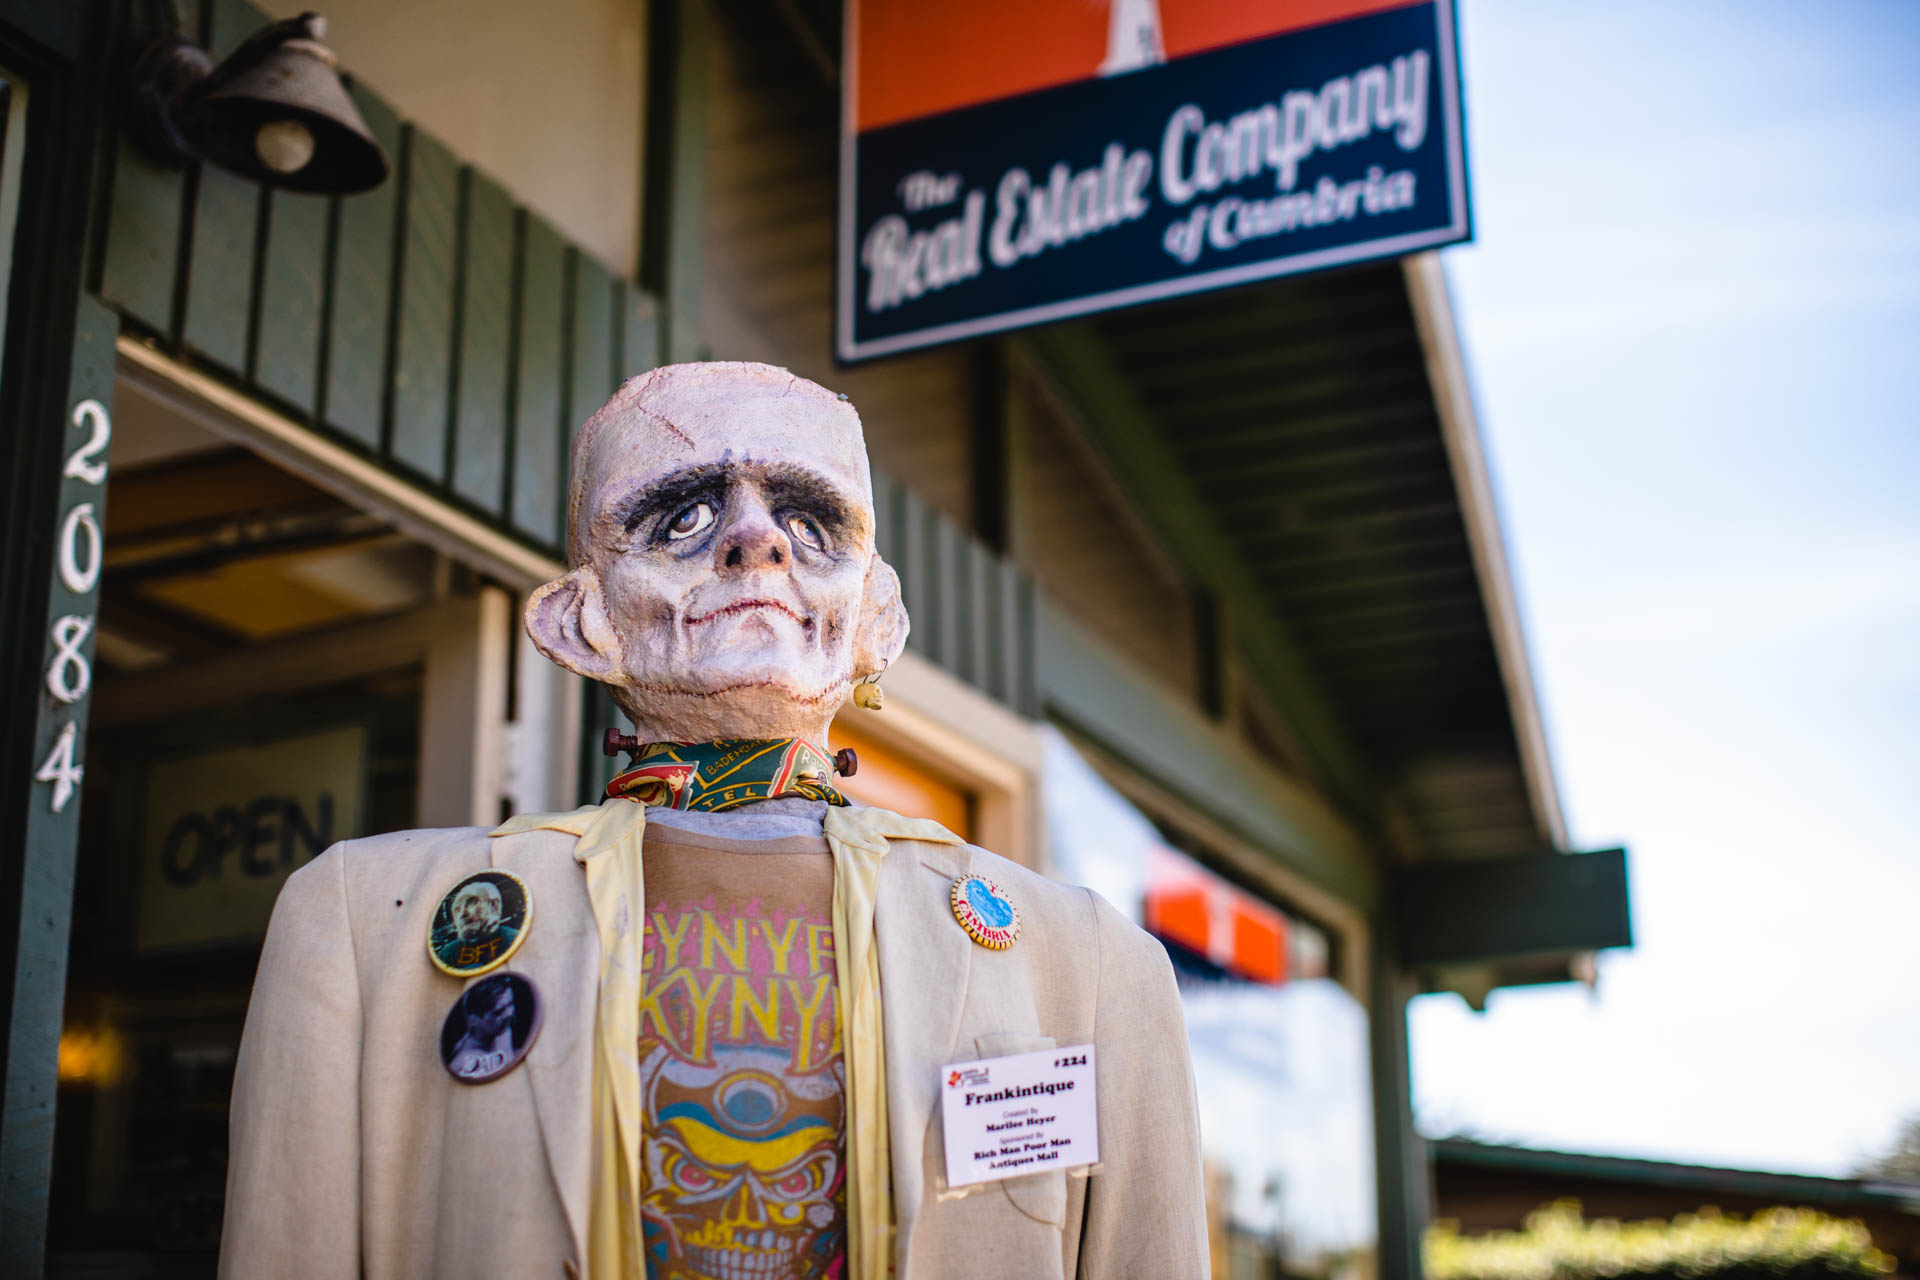 The Scarecrows are displayed throughout the town from October 1 through 31